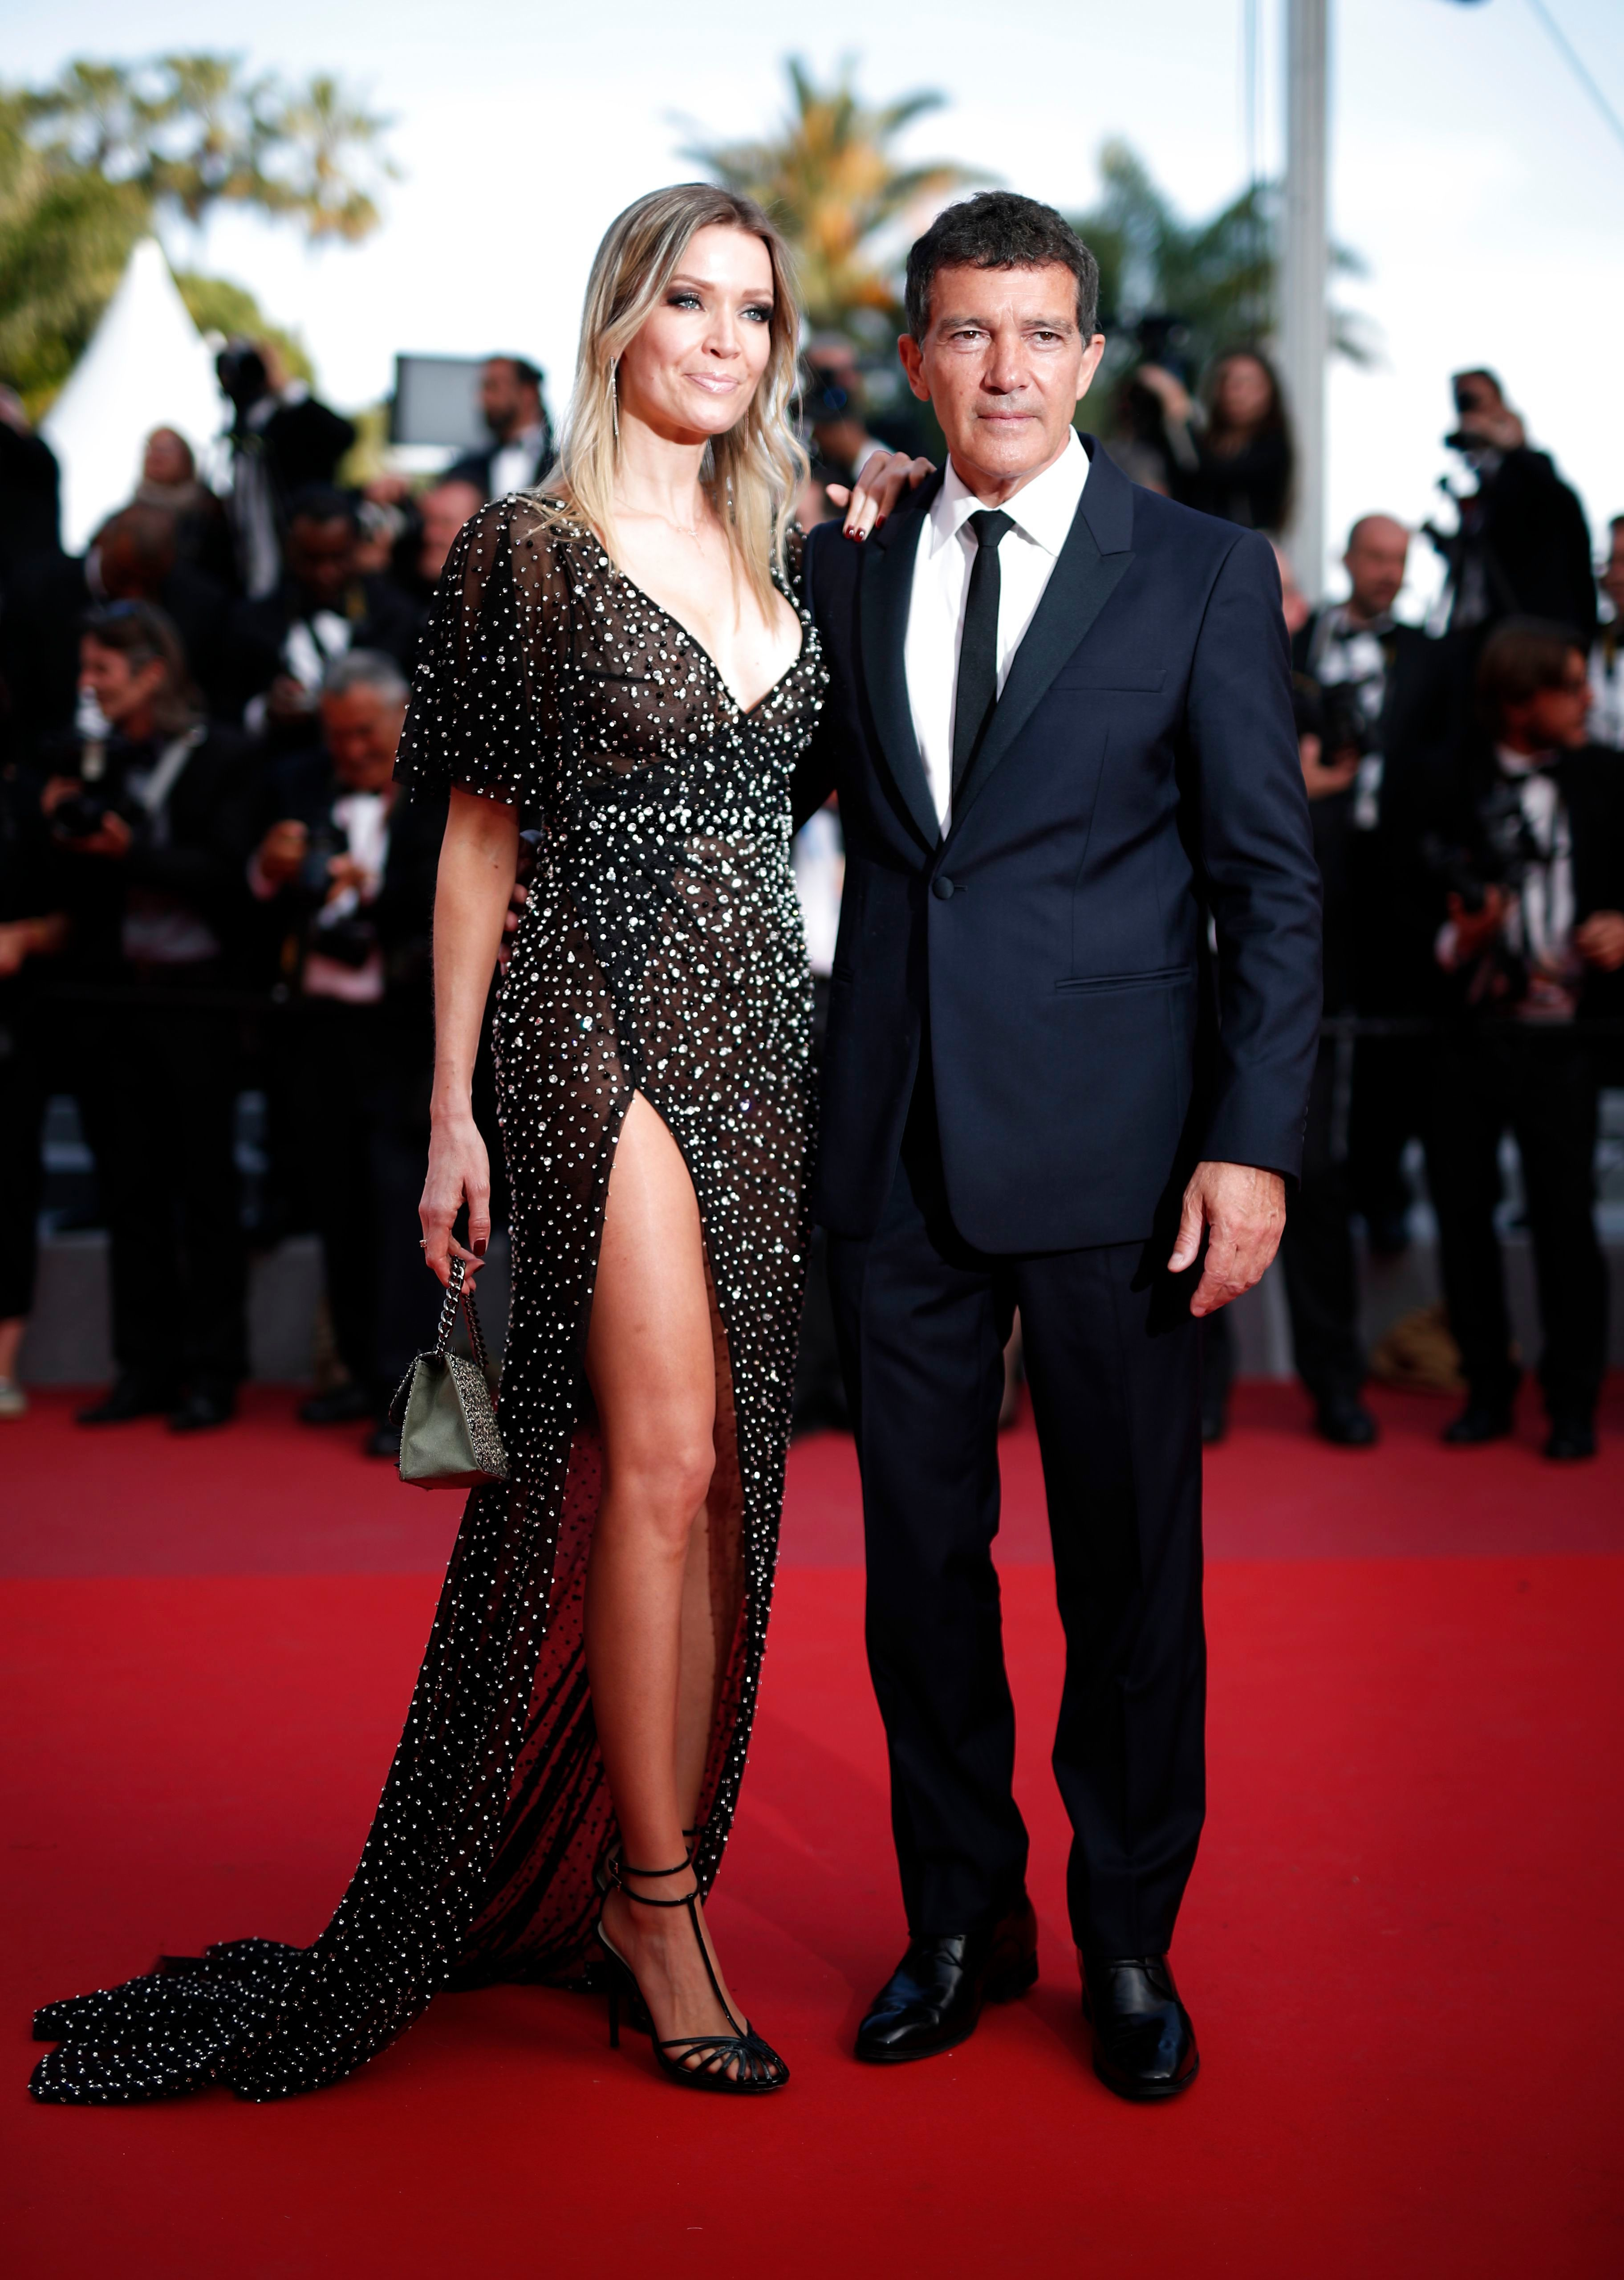 """Antonio Banderas and girlfriend Nicole Kimpel arrive for the Closing Awards Ceremony of the 72nd Annual Cannes Film Festival in France on May 25, 2019, where he received the best actor Palme d'Or prize for his work in the film """"Pain and Glory."""""""